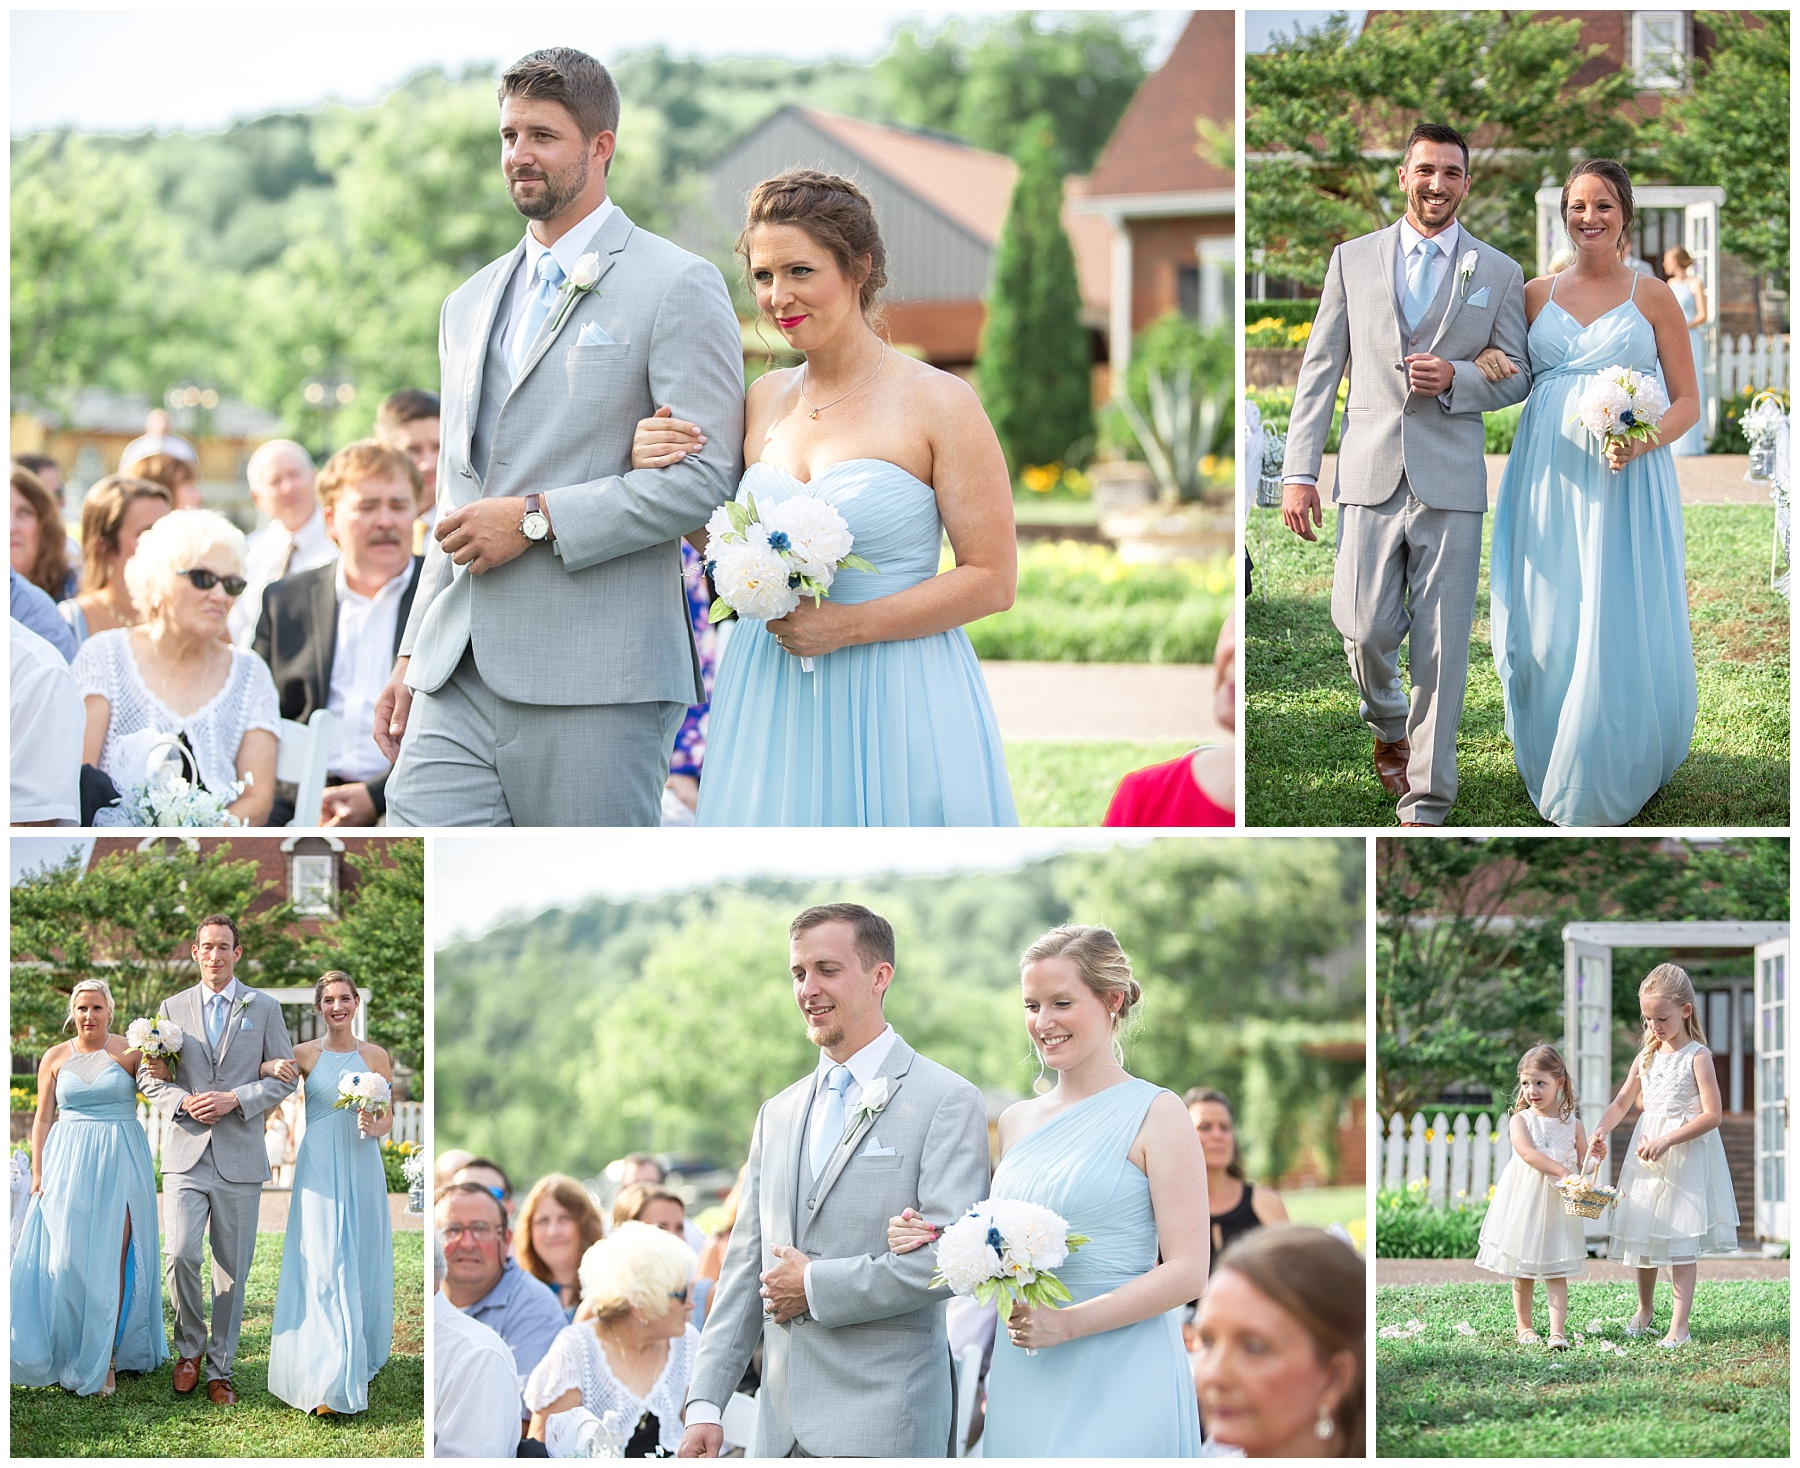 Wedding ceremony at Rock Creek Farm in Gallatin Tn - Nashville Photographer